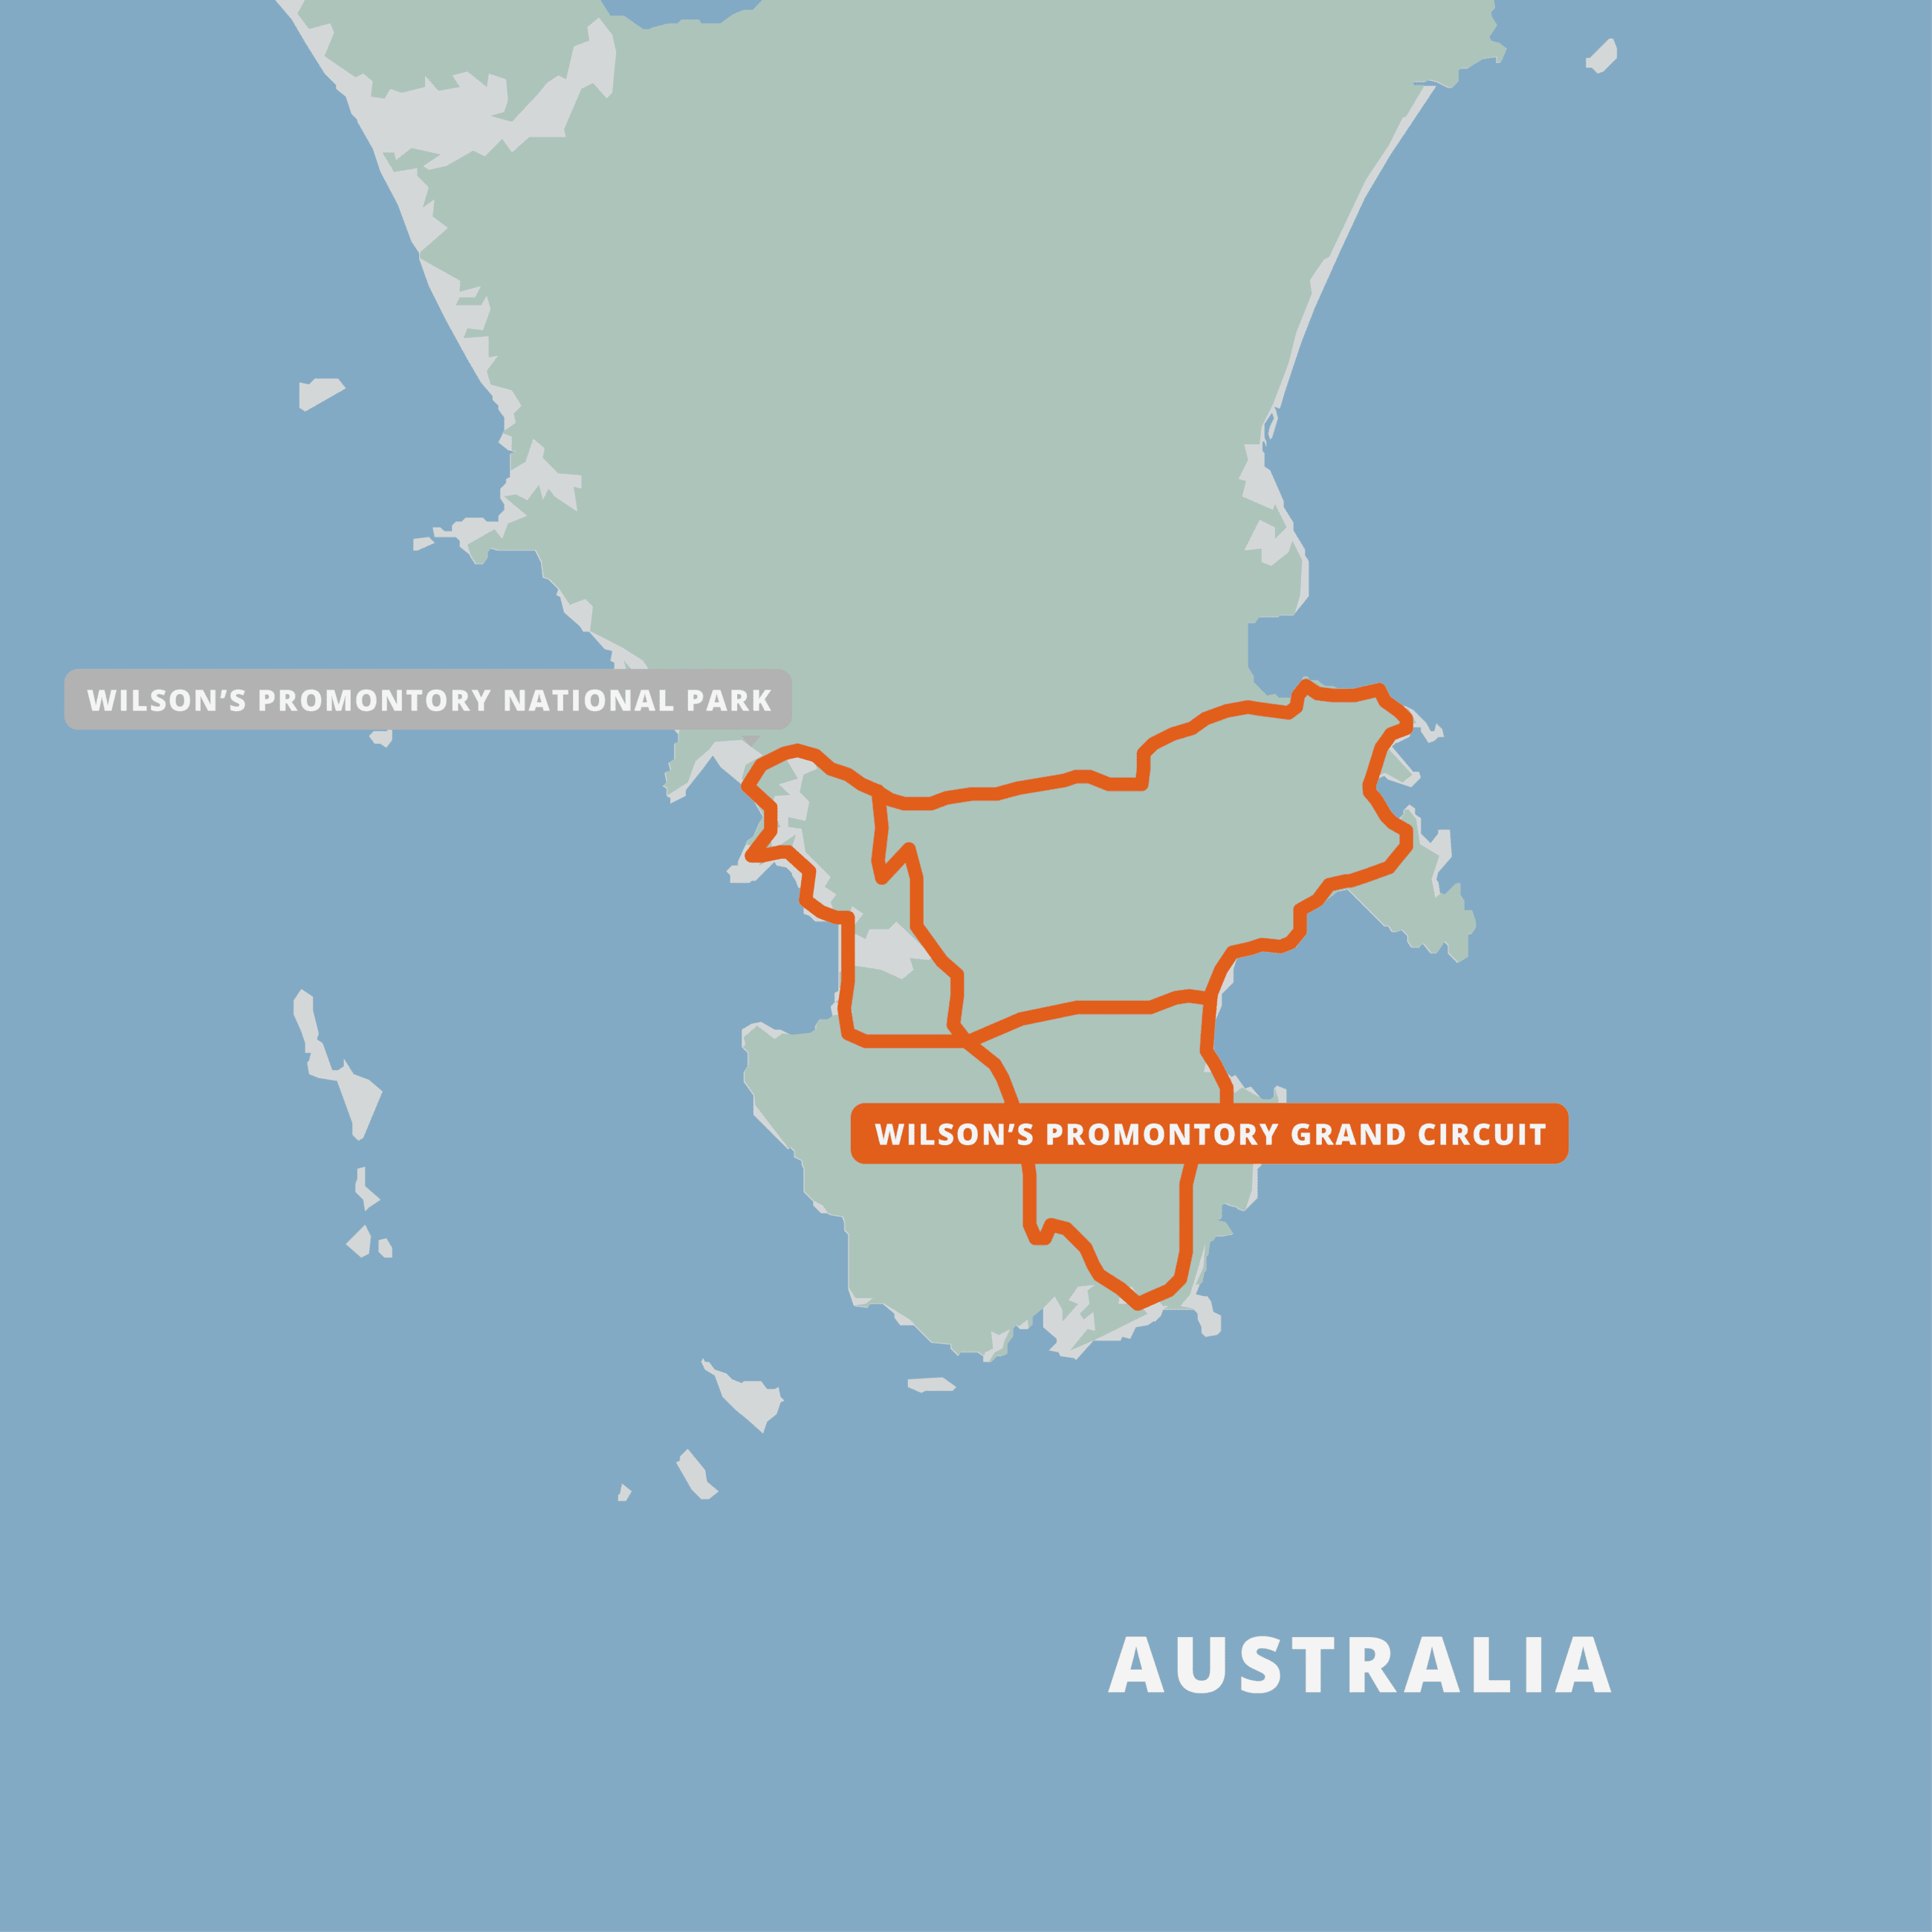 A map of the Wilson's Promontory Grand Circuit.